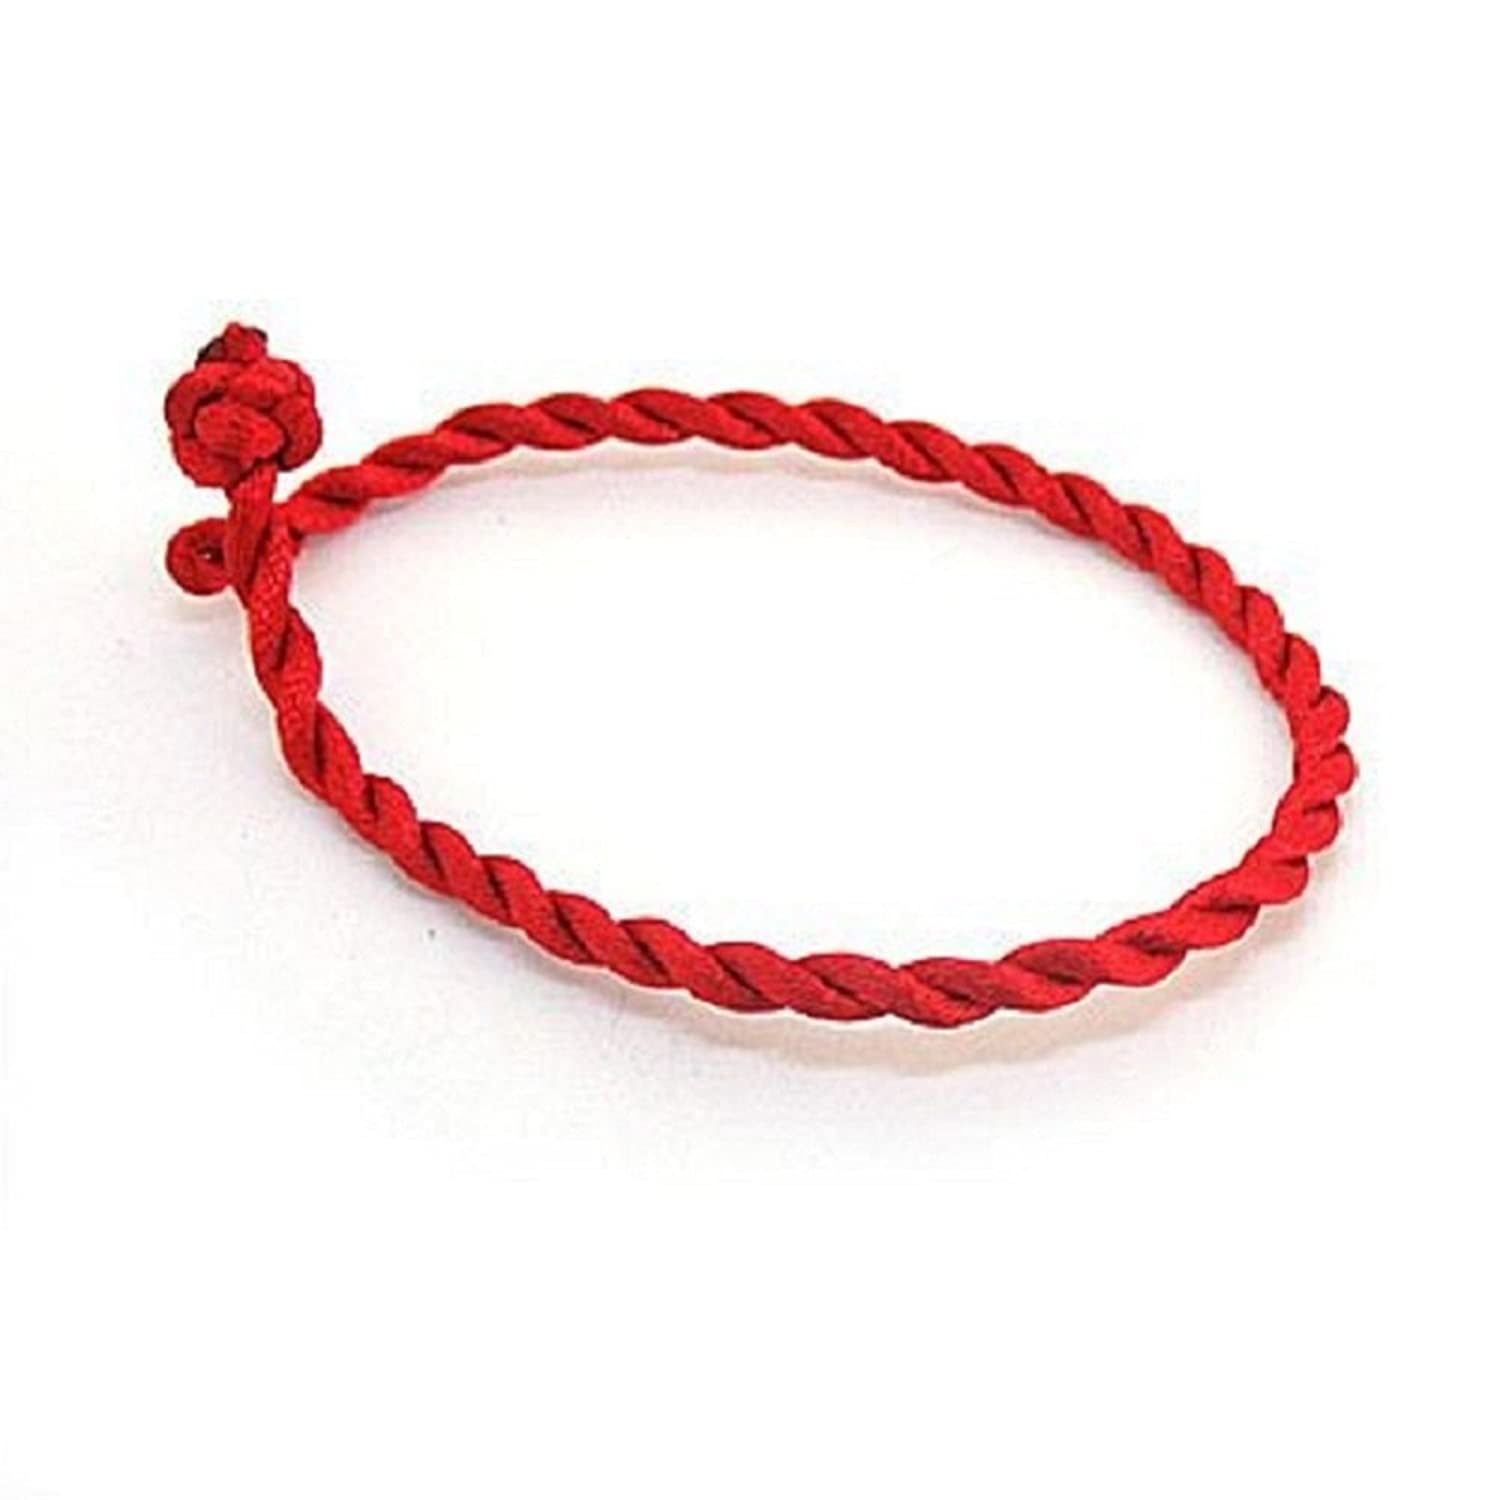 red tenoroc november october page bracelet of week thru ribbon